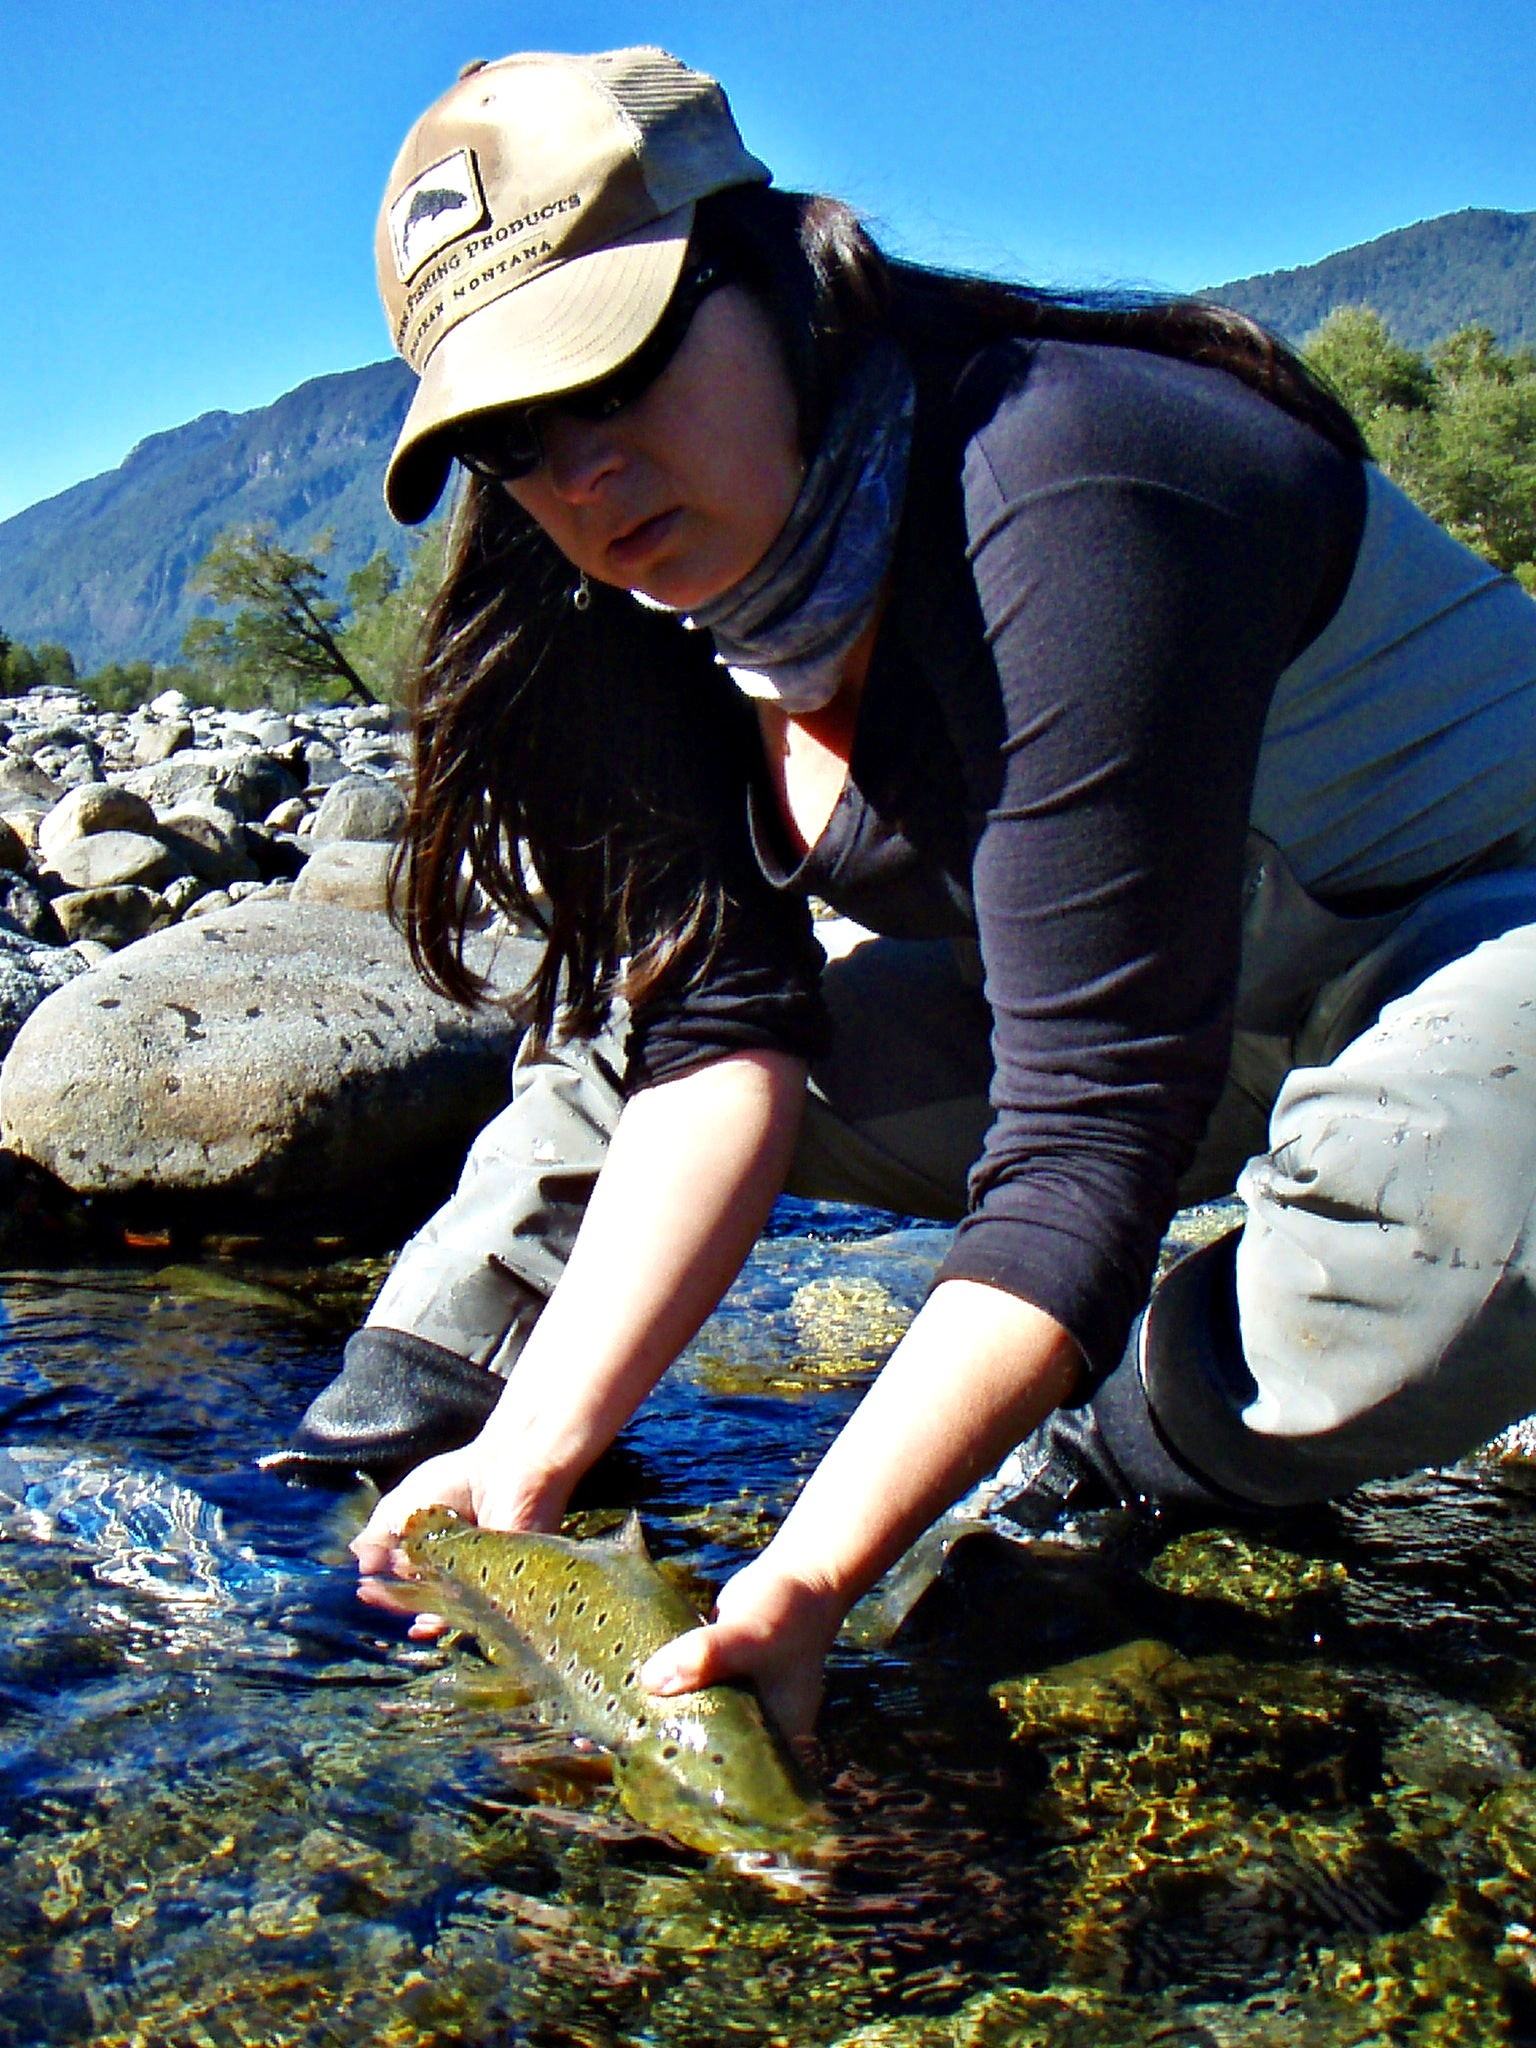 Chile Fly Fishing | Fly Fishing Chile | Chile Fishing Guide | Patagonia Trout Adventures |